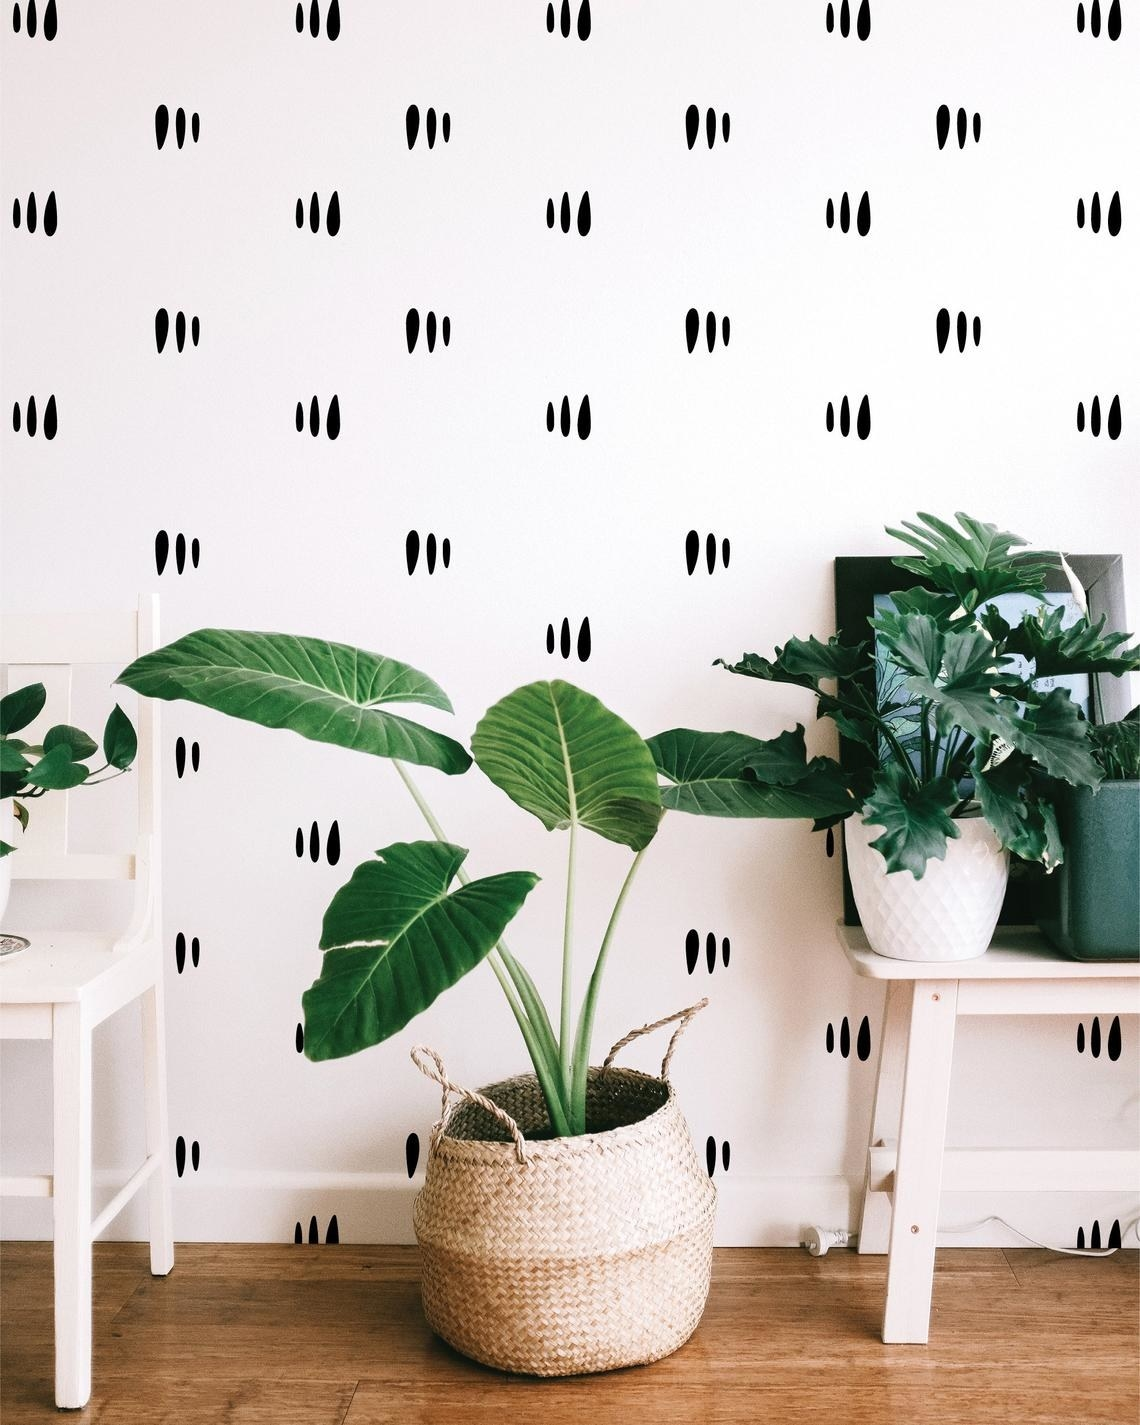 The decals on a wall behind plants